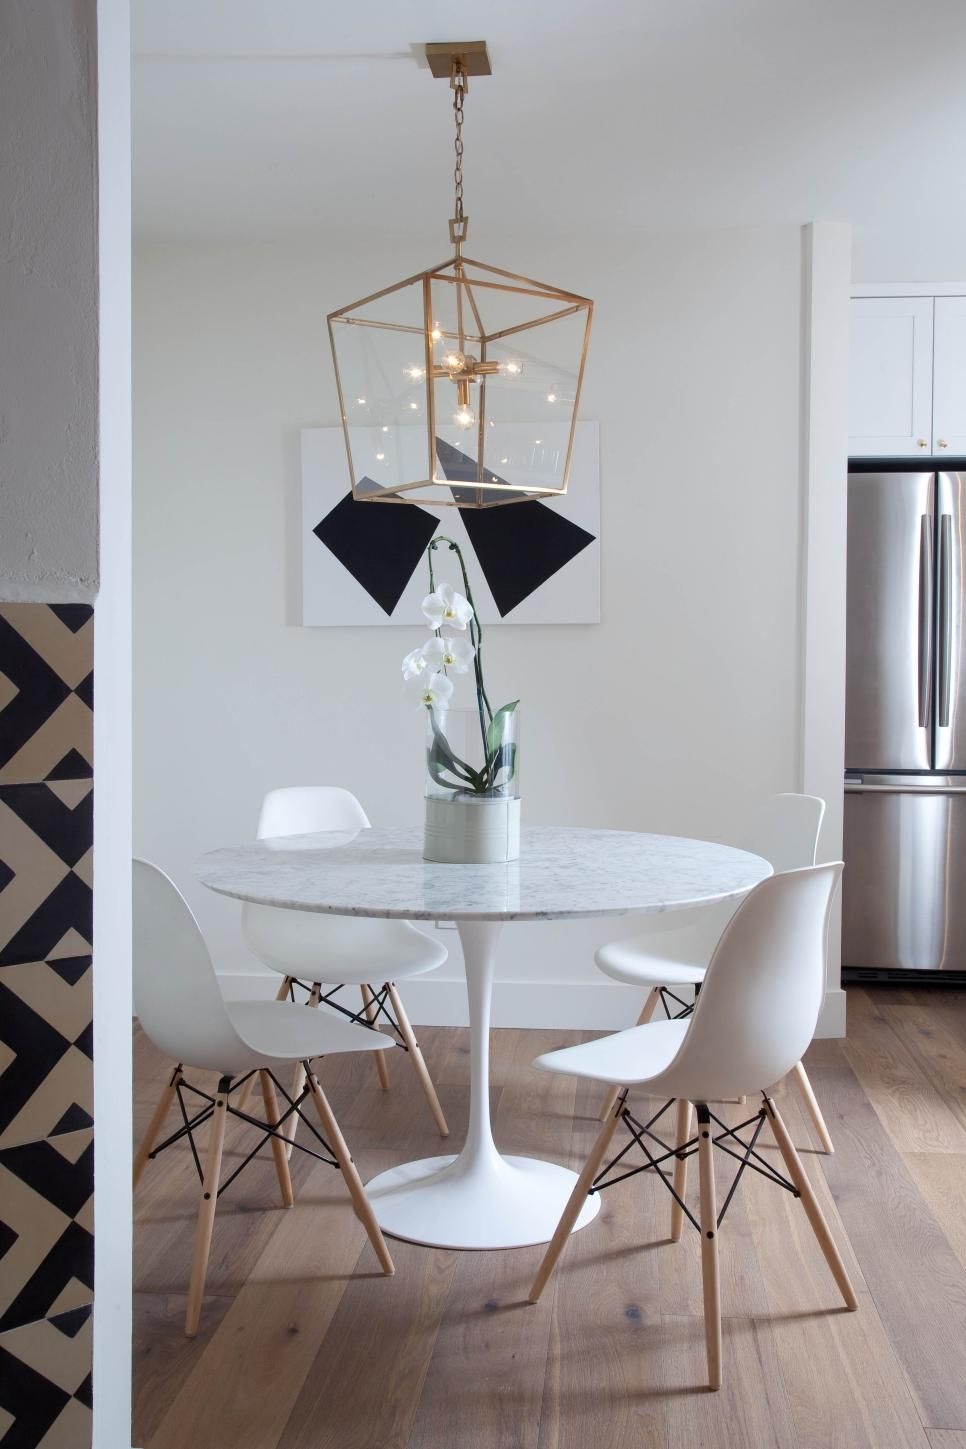 white eames-style dining chairs surround the contemporary round